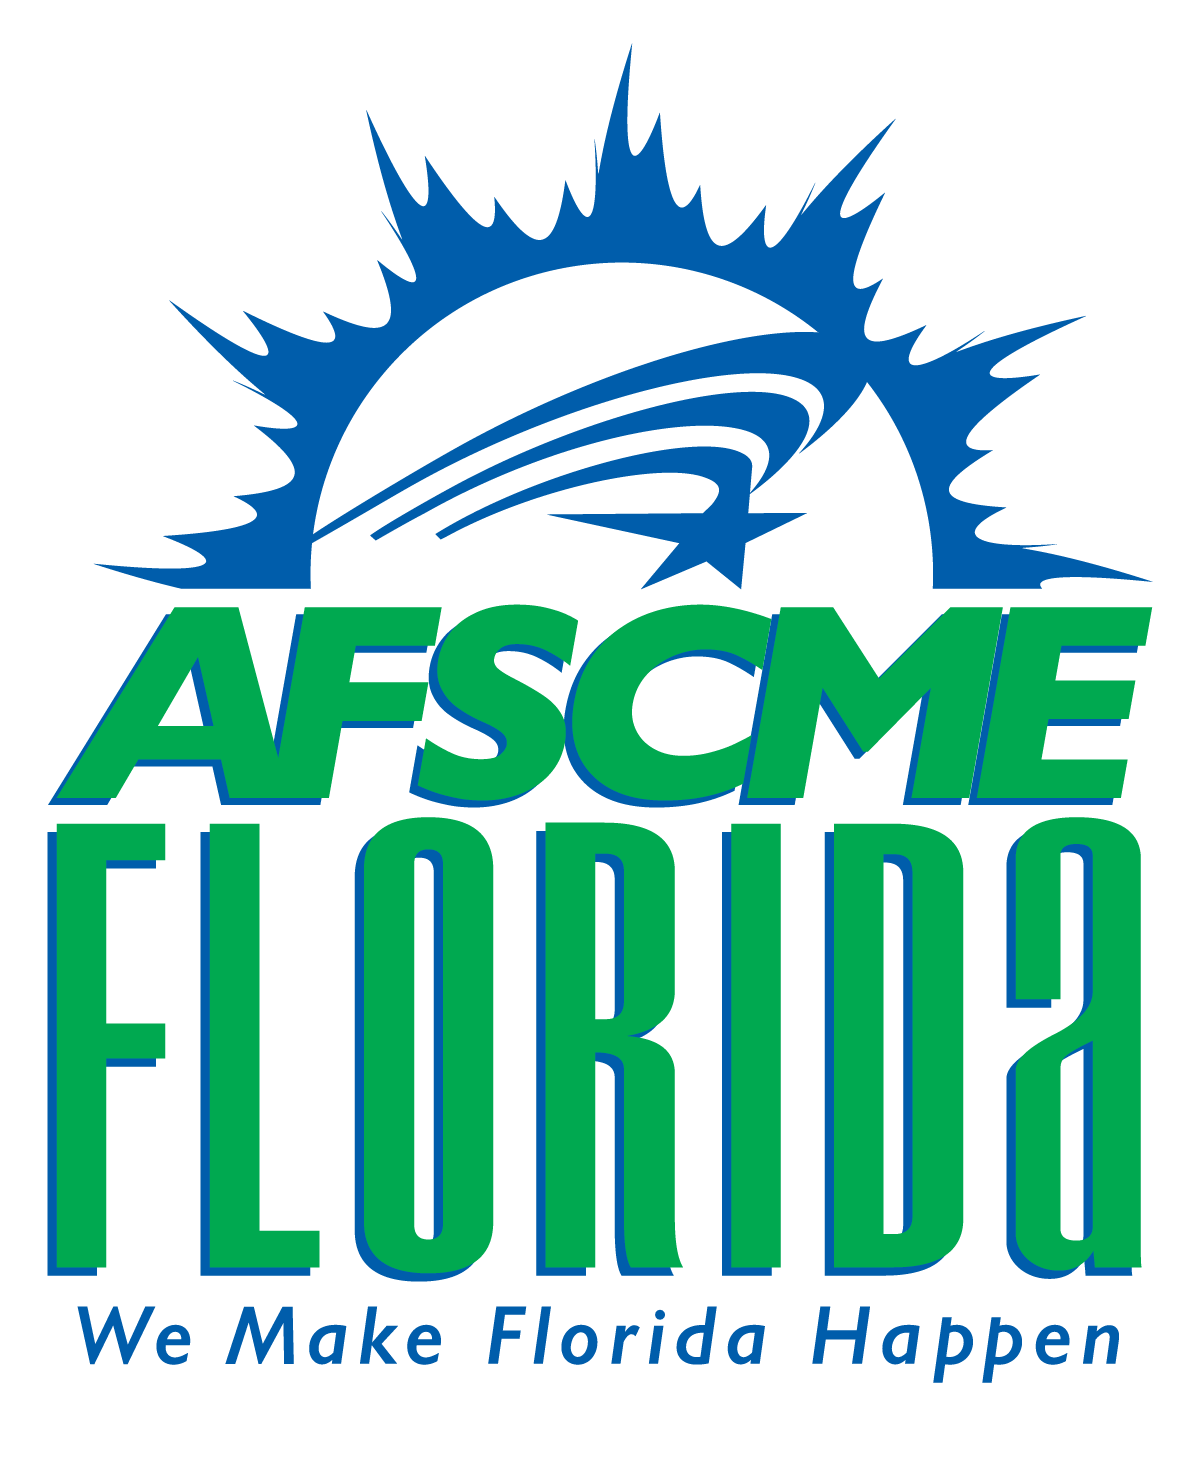 AFSCME Council 979